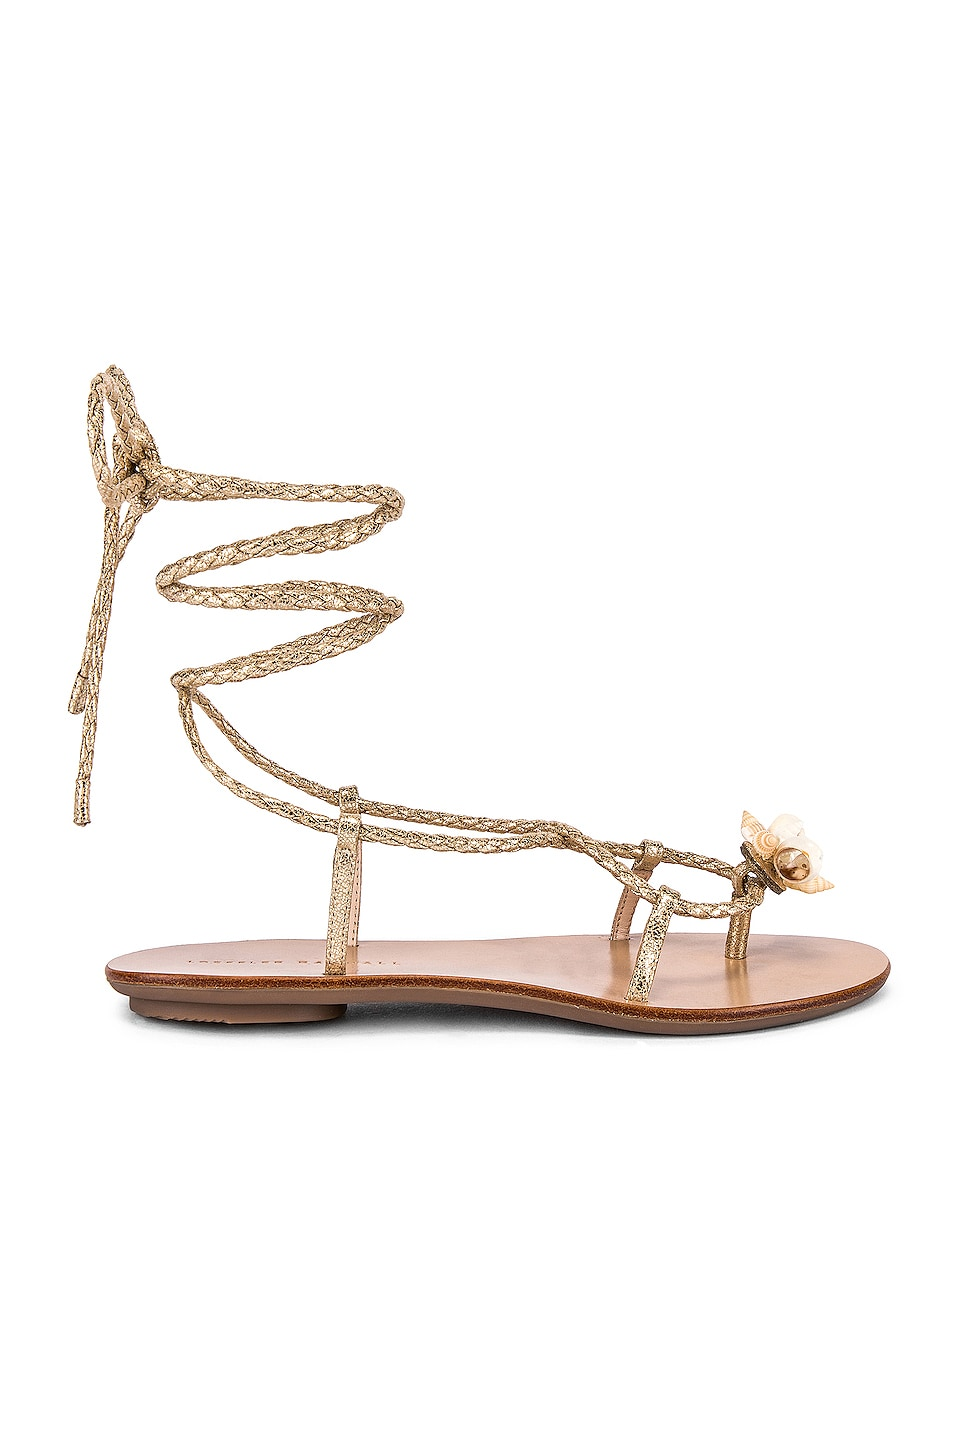 Loeffler Randall Wrap Sandal With Shells in Champagne